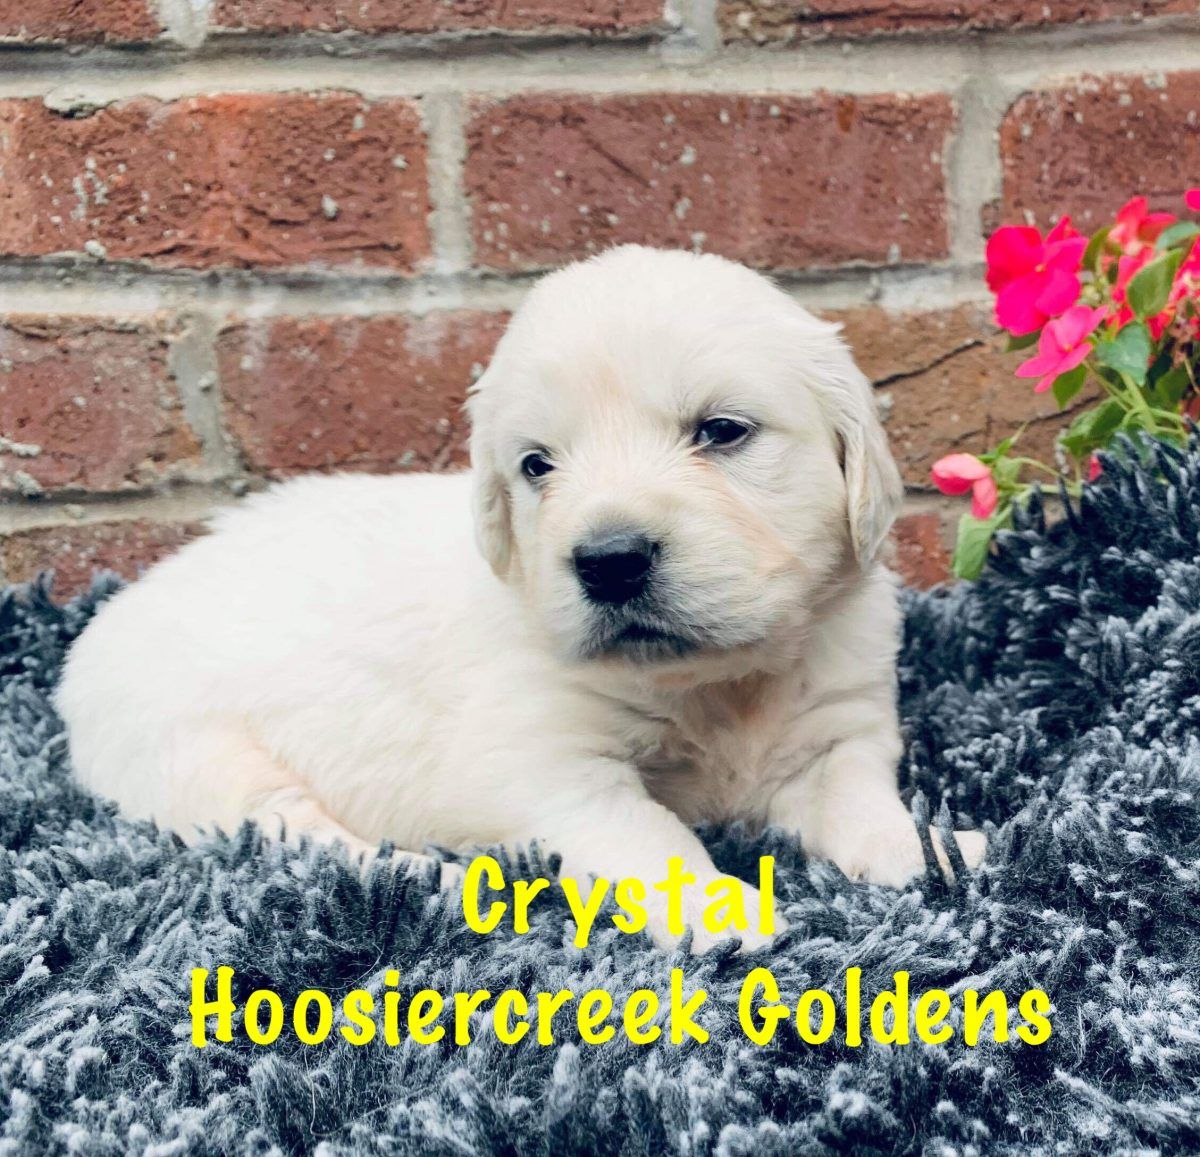 Crystal Akc Female Golden Retriever Puppy For Sale Loogootee In